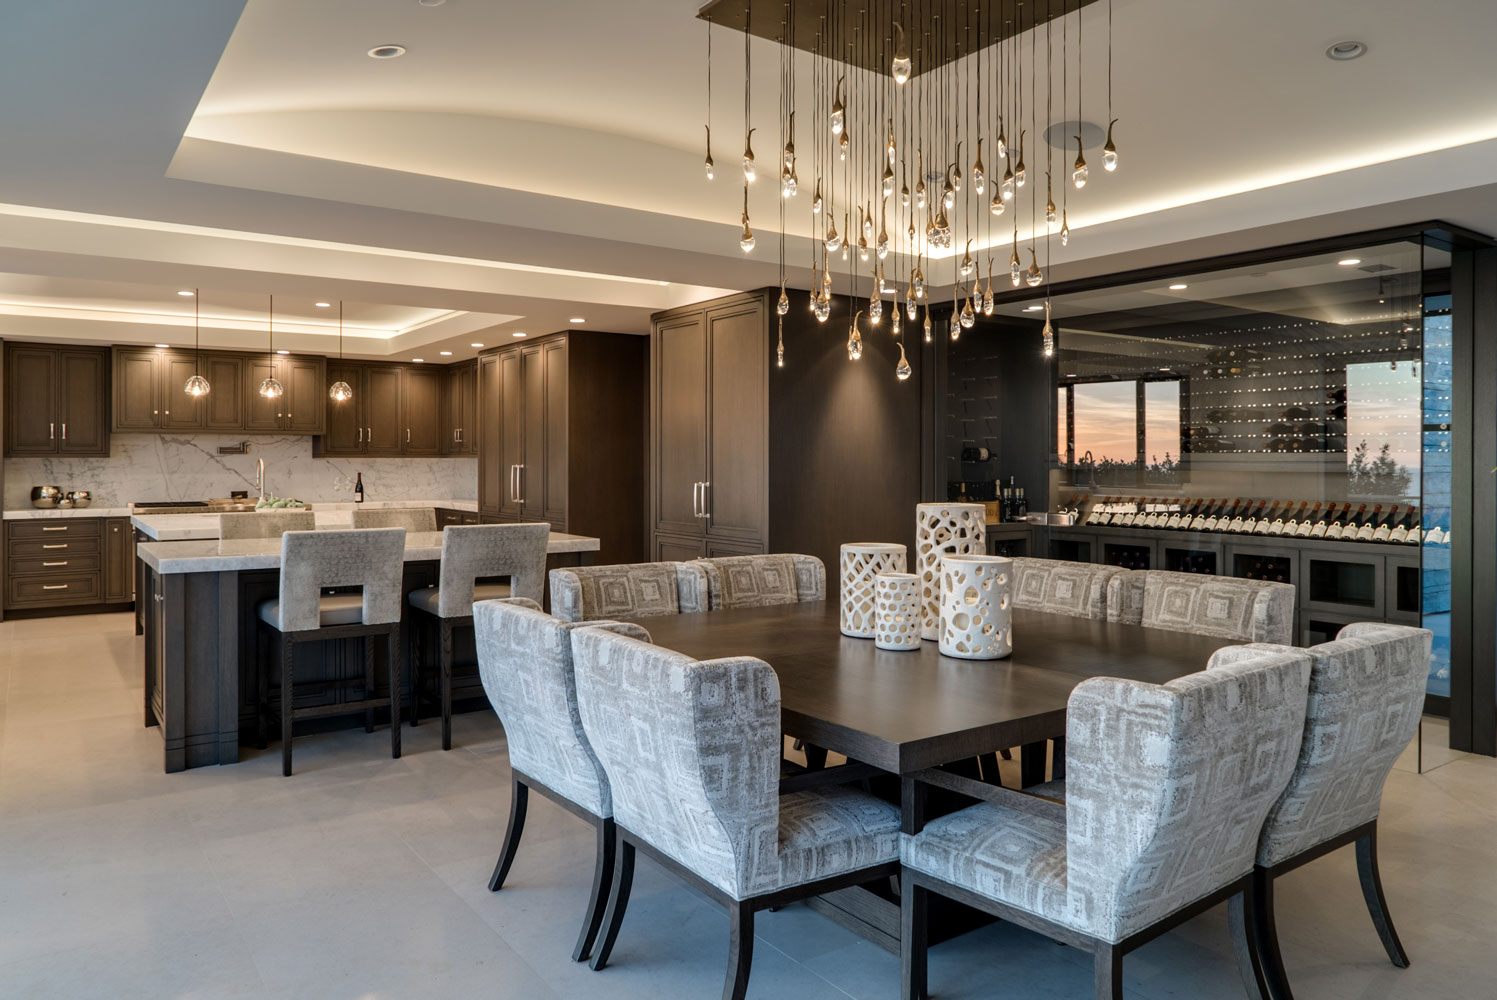 Modern-Contemporary-Kitchen-Dining-Room-Chandelier-Dual-Islands-Corbin-Reeves.jpg